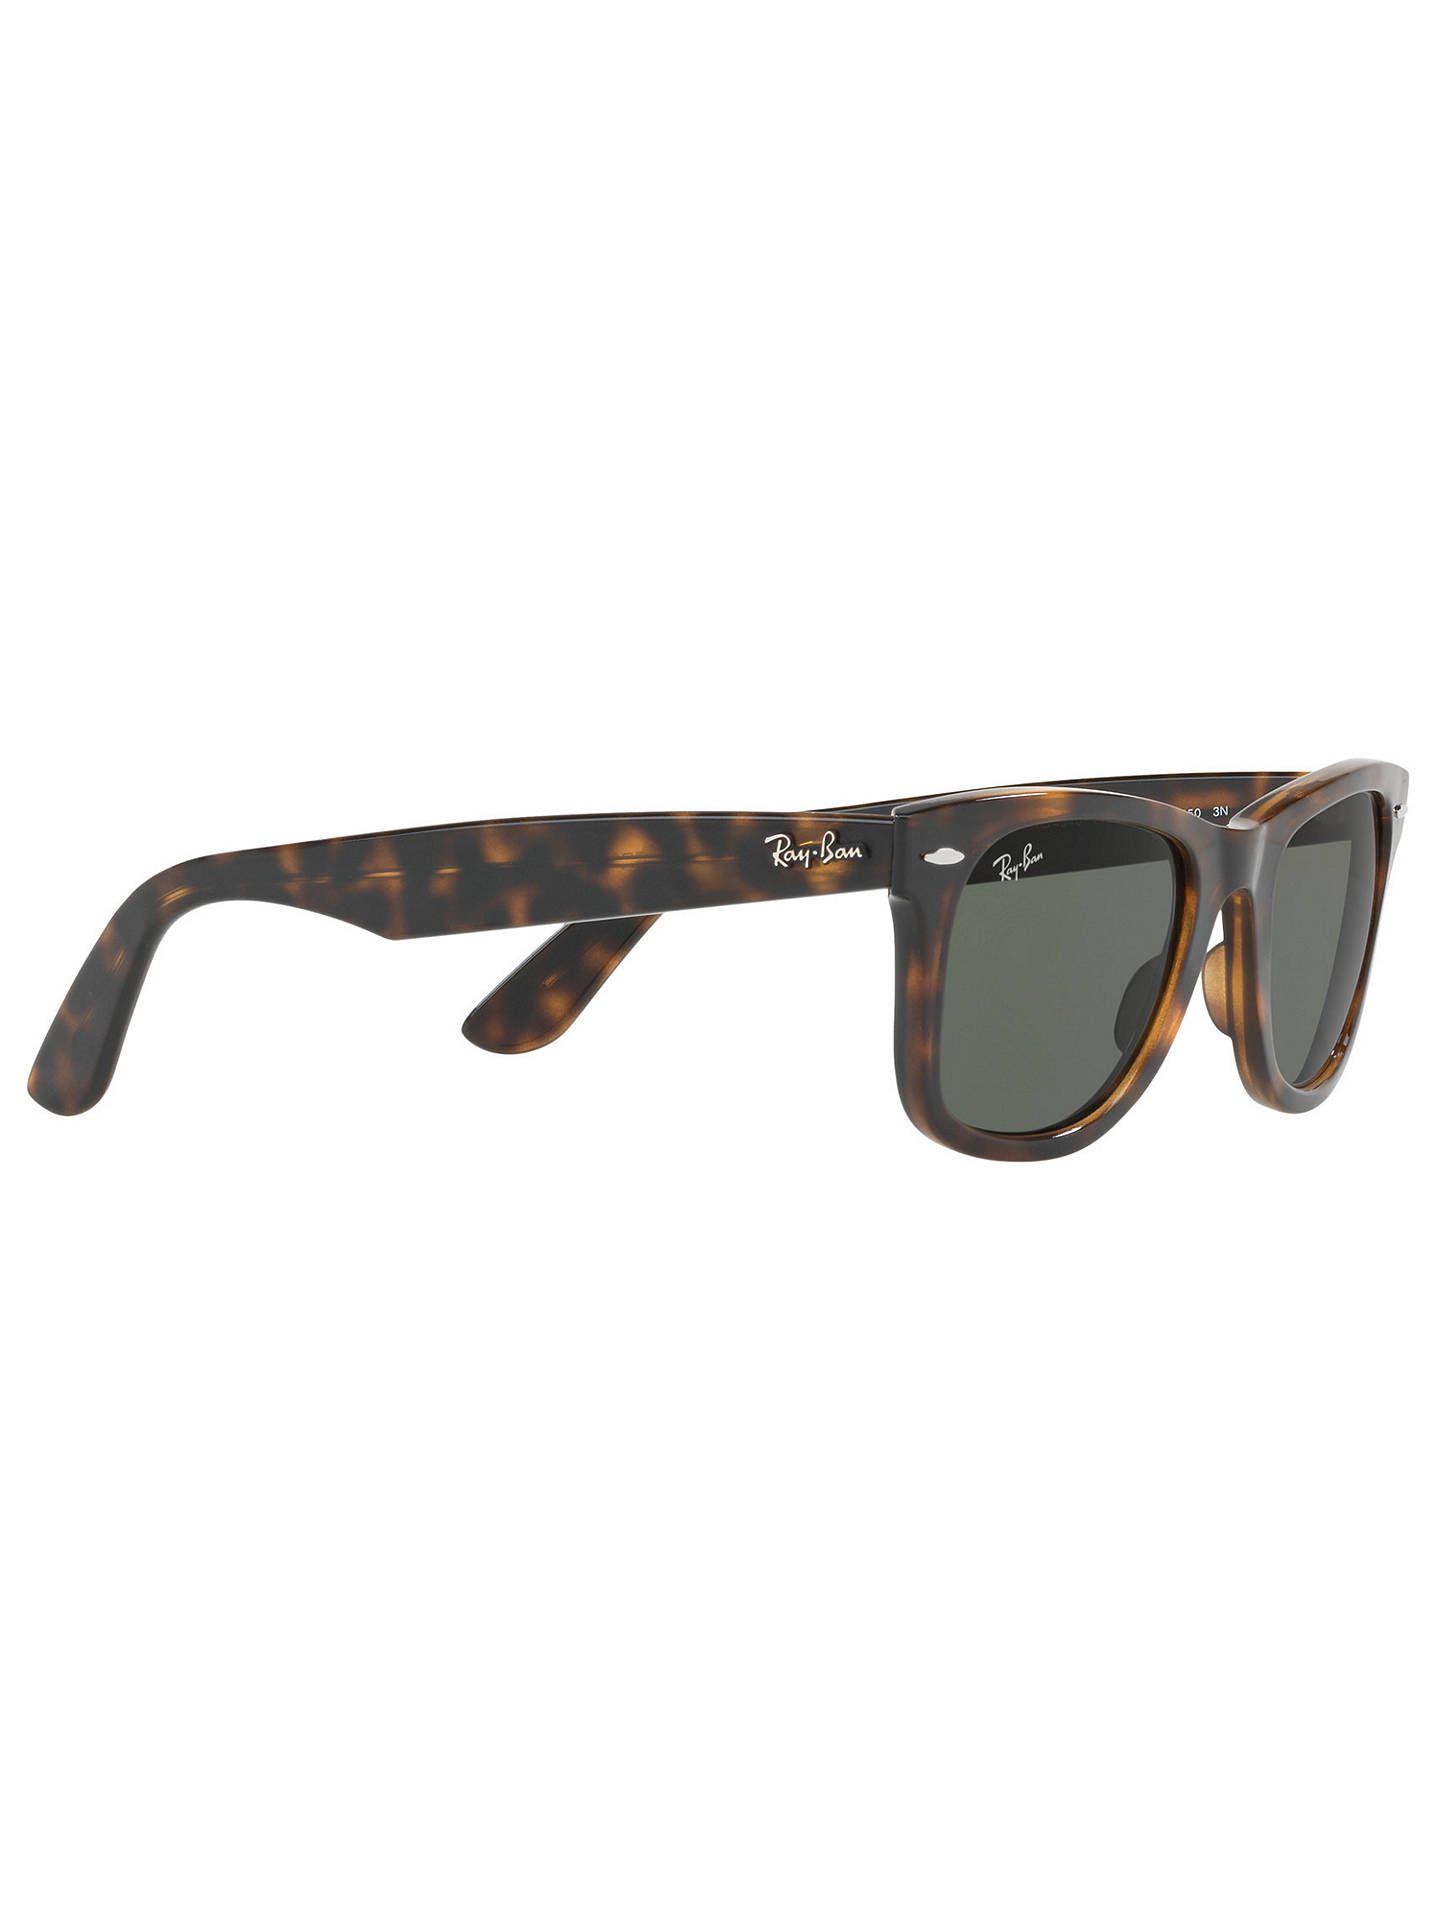 b9e8638977 ... Buy Ray-Ban RB4340 Wayfarer Sunglasses